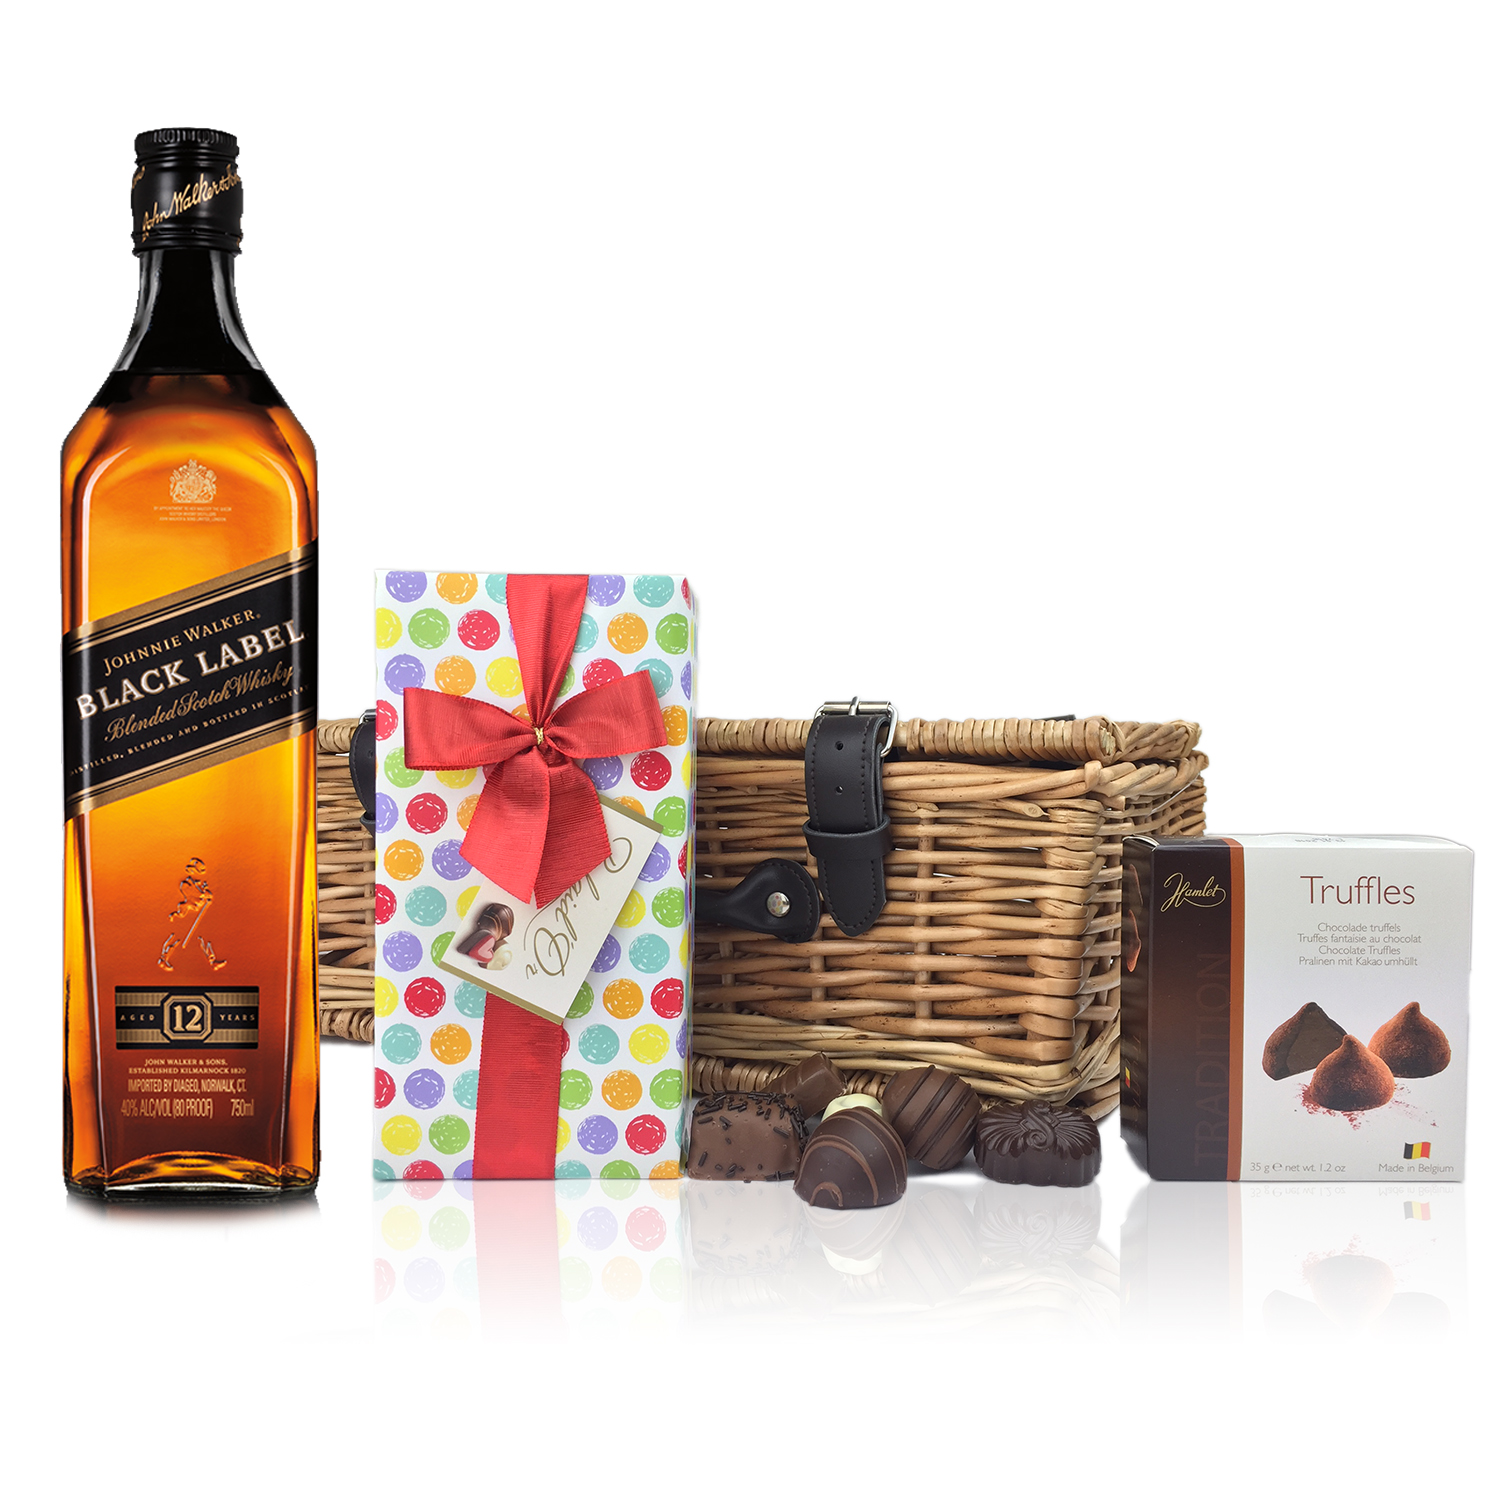 Johnnie Walker Black Label Whisky And Chocolates Hamper A